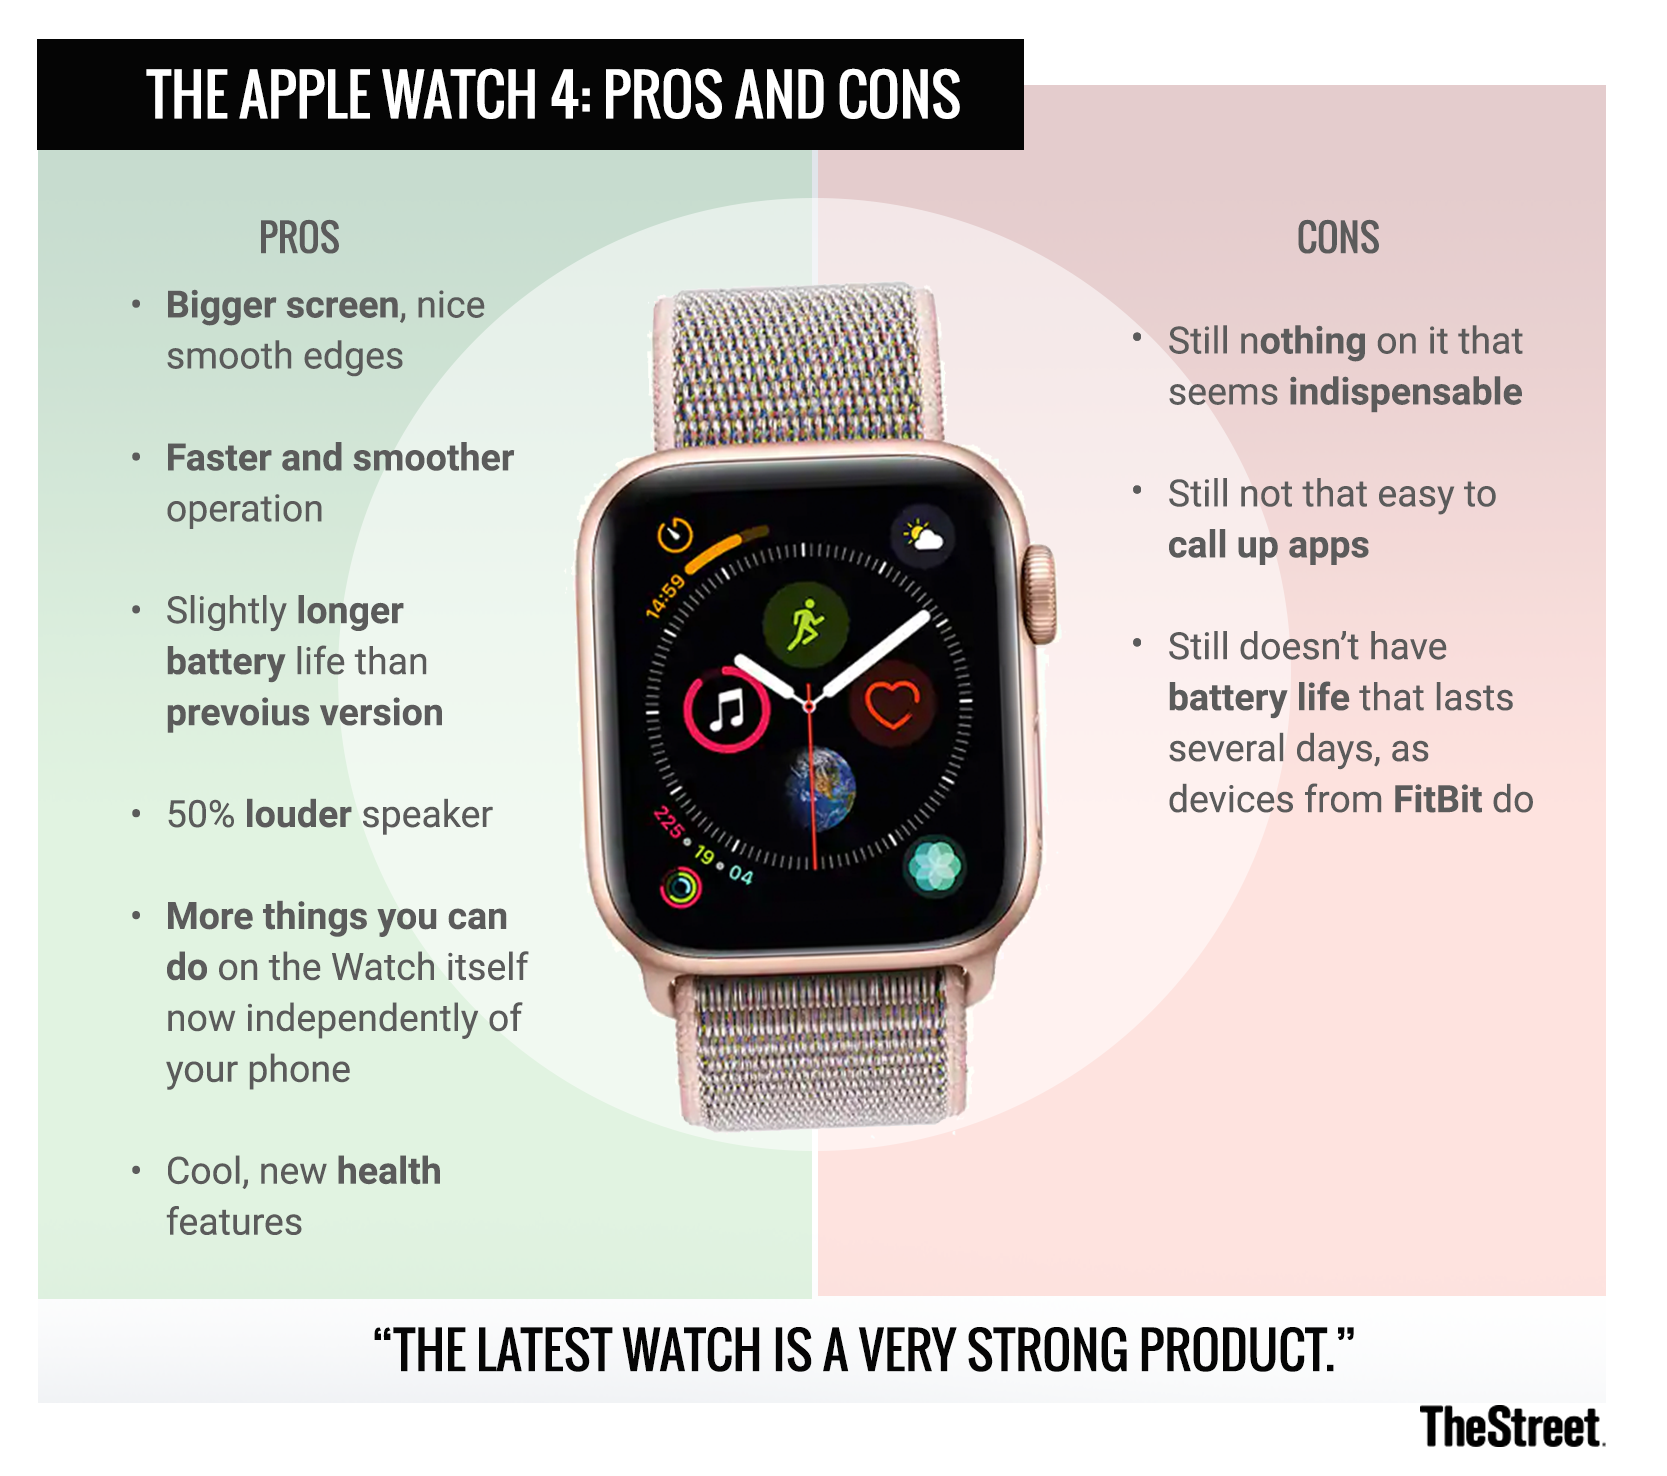 Apple Watch 4 Review: Some Big Improvements But Still Waiting for Killer App